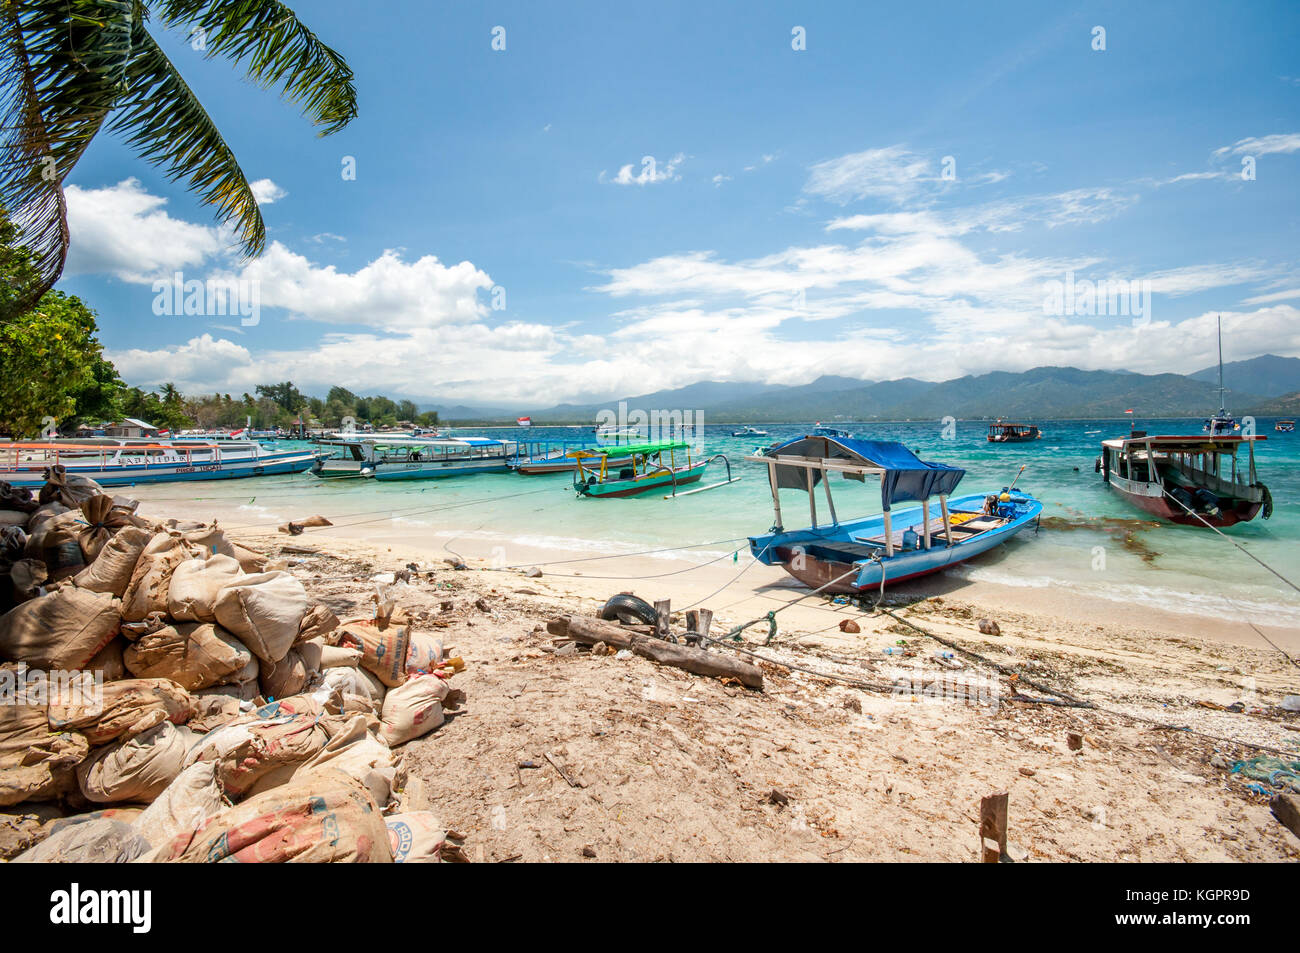 Le port de Gili Air traditionnel Indonésien, bateaux amarrés, Gili Trawangan, Indonésie, Asie du Photo Stock